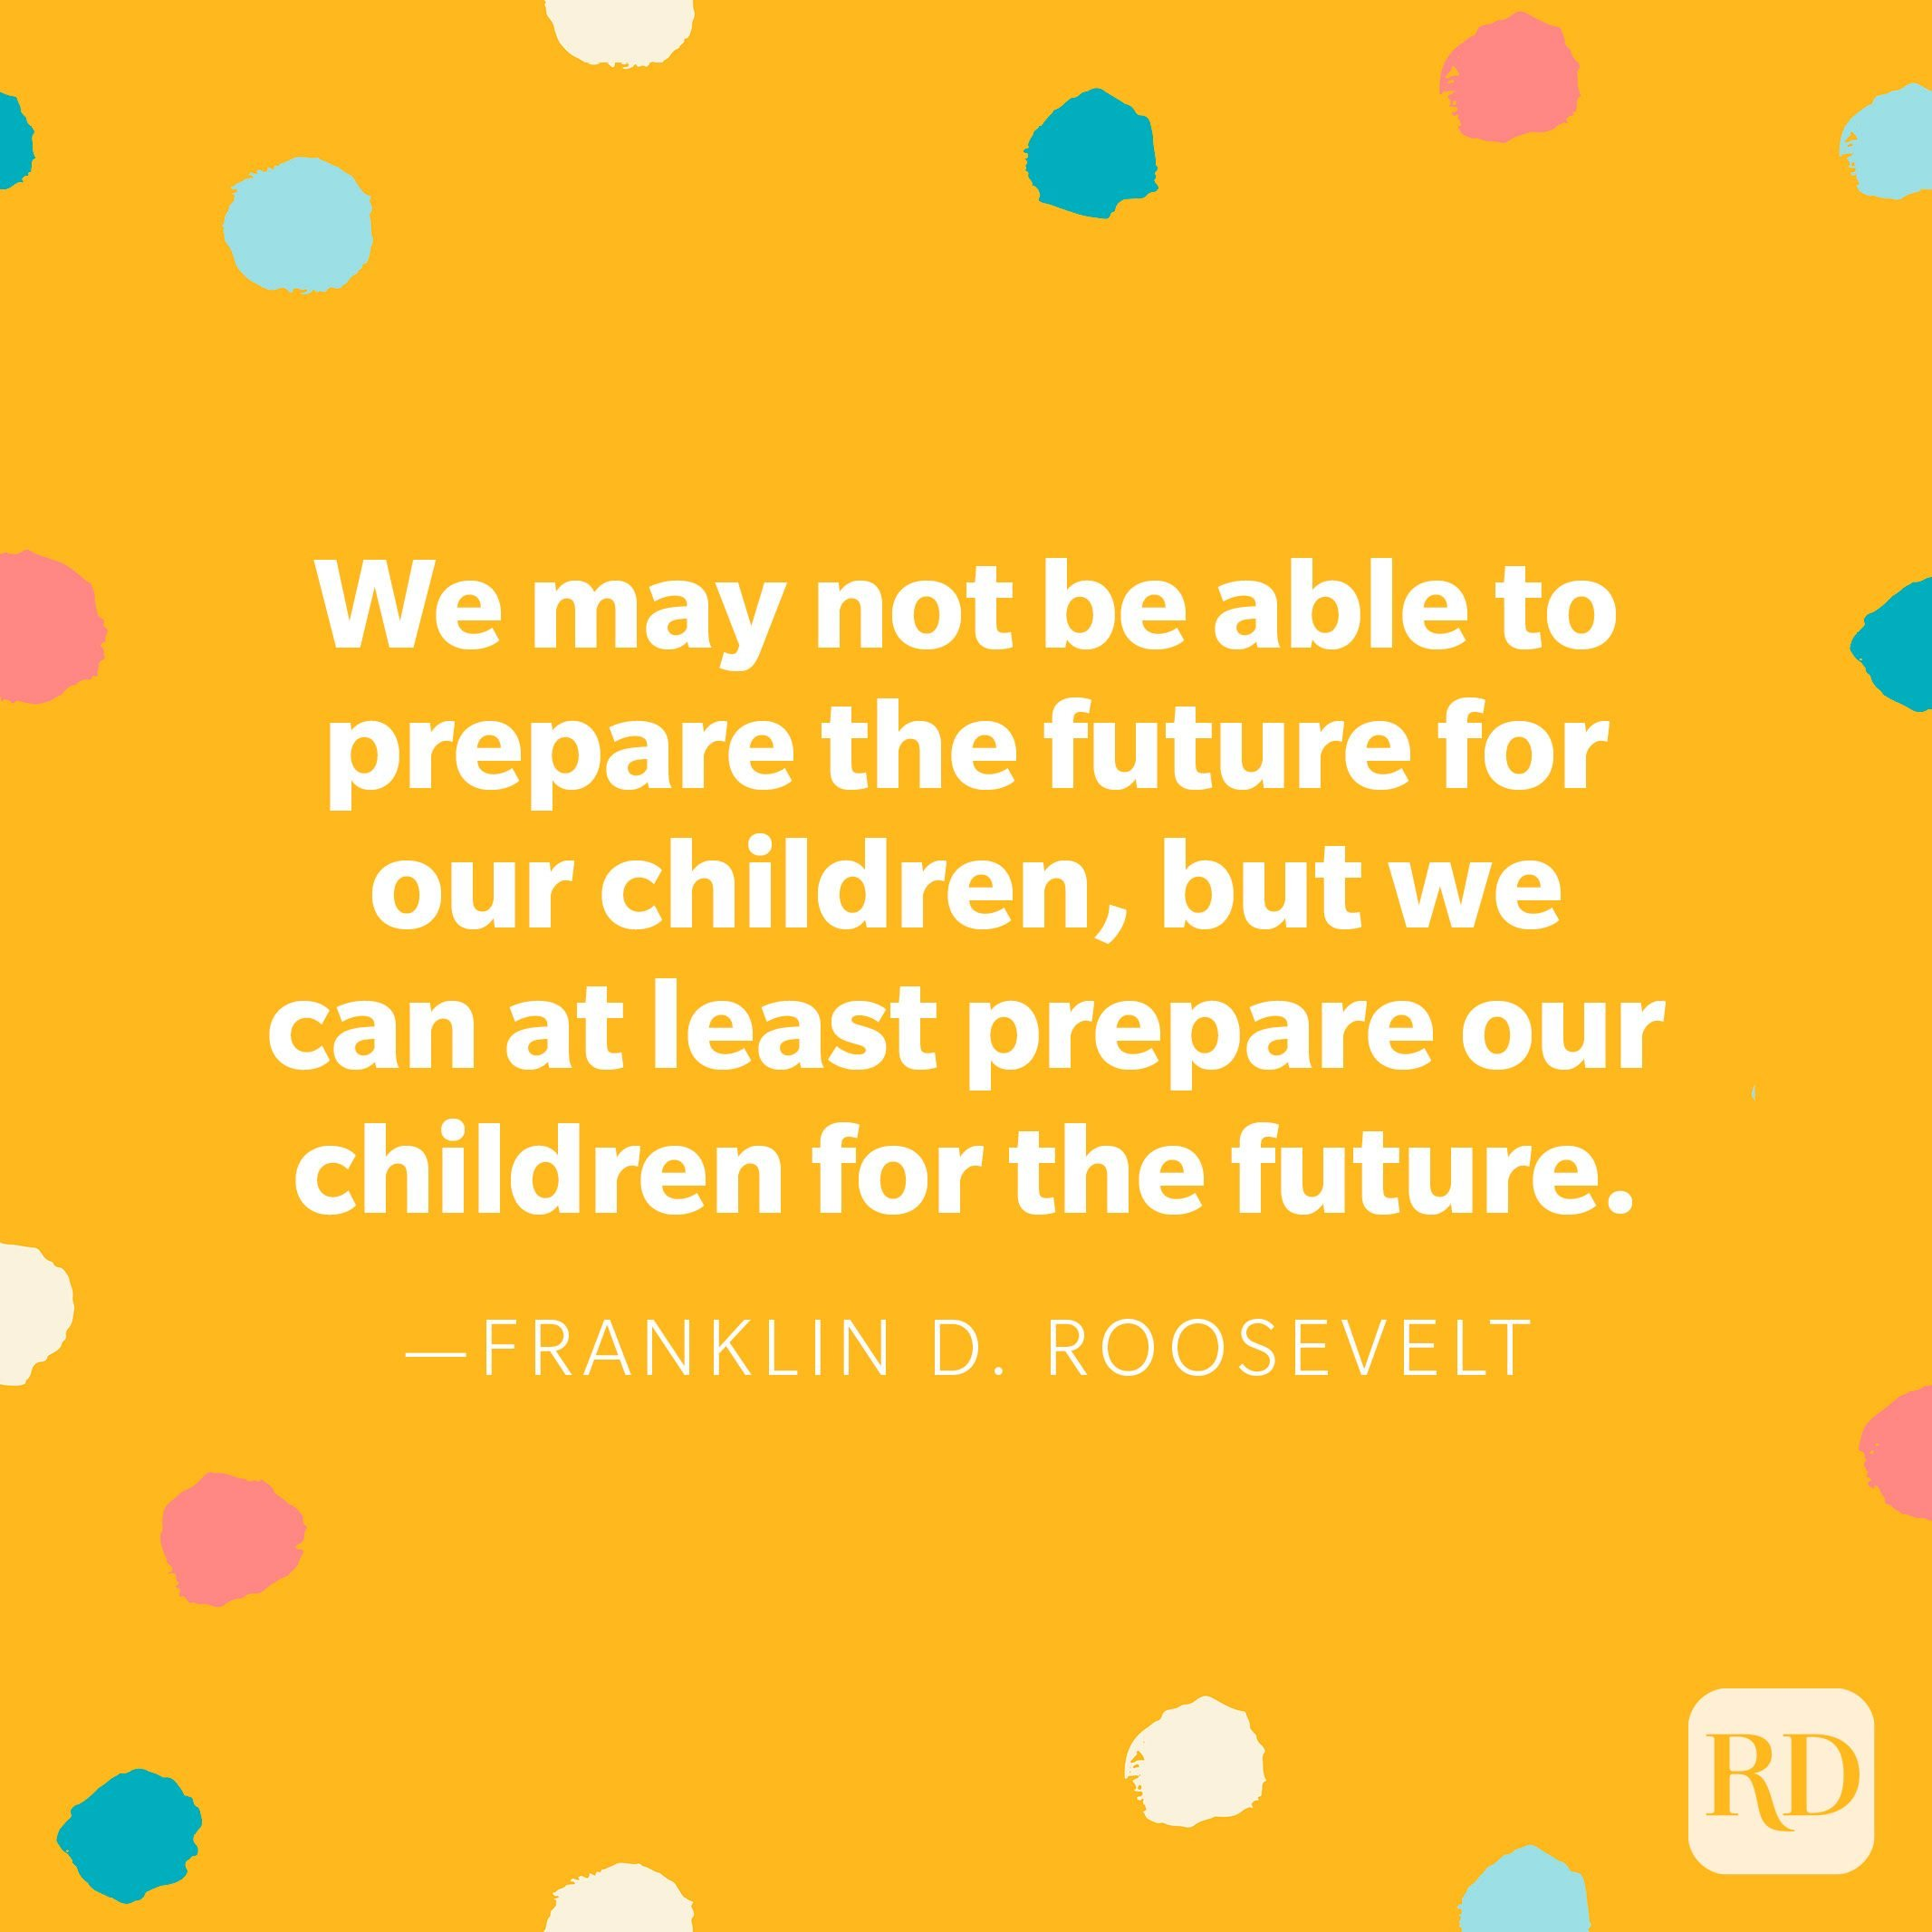 """""""We may not be able to prepare the future for our children, but we can at least prepare our children for the future."""" — Franklin D. Roosevelt"""